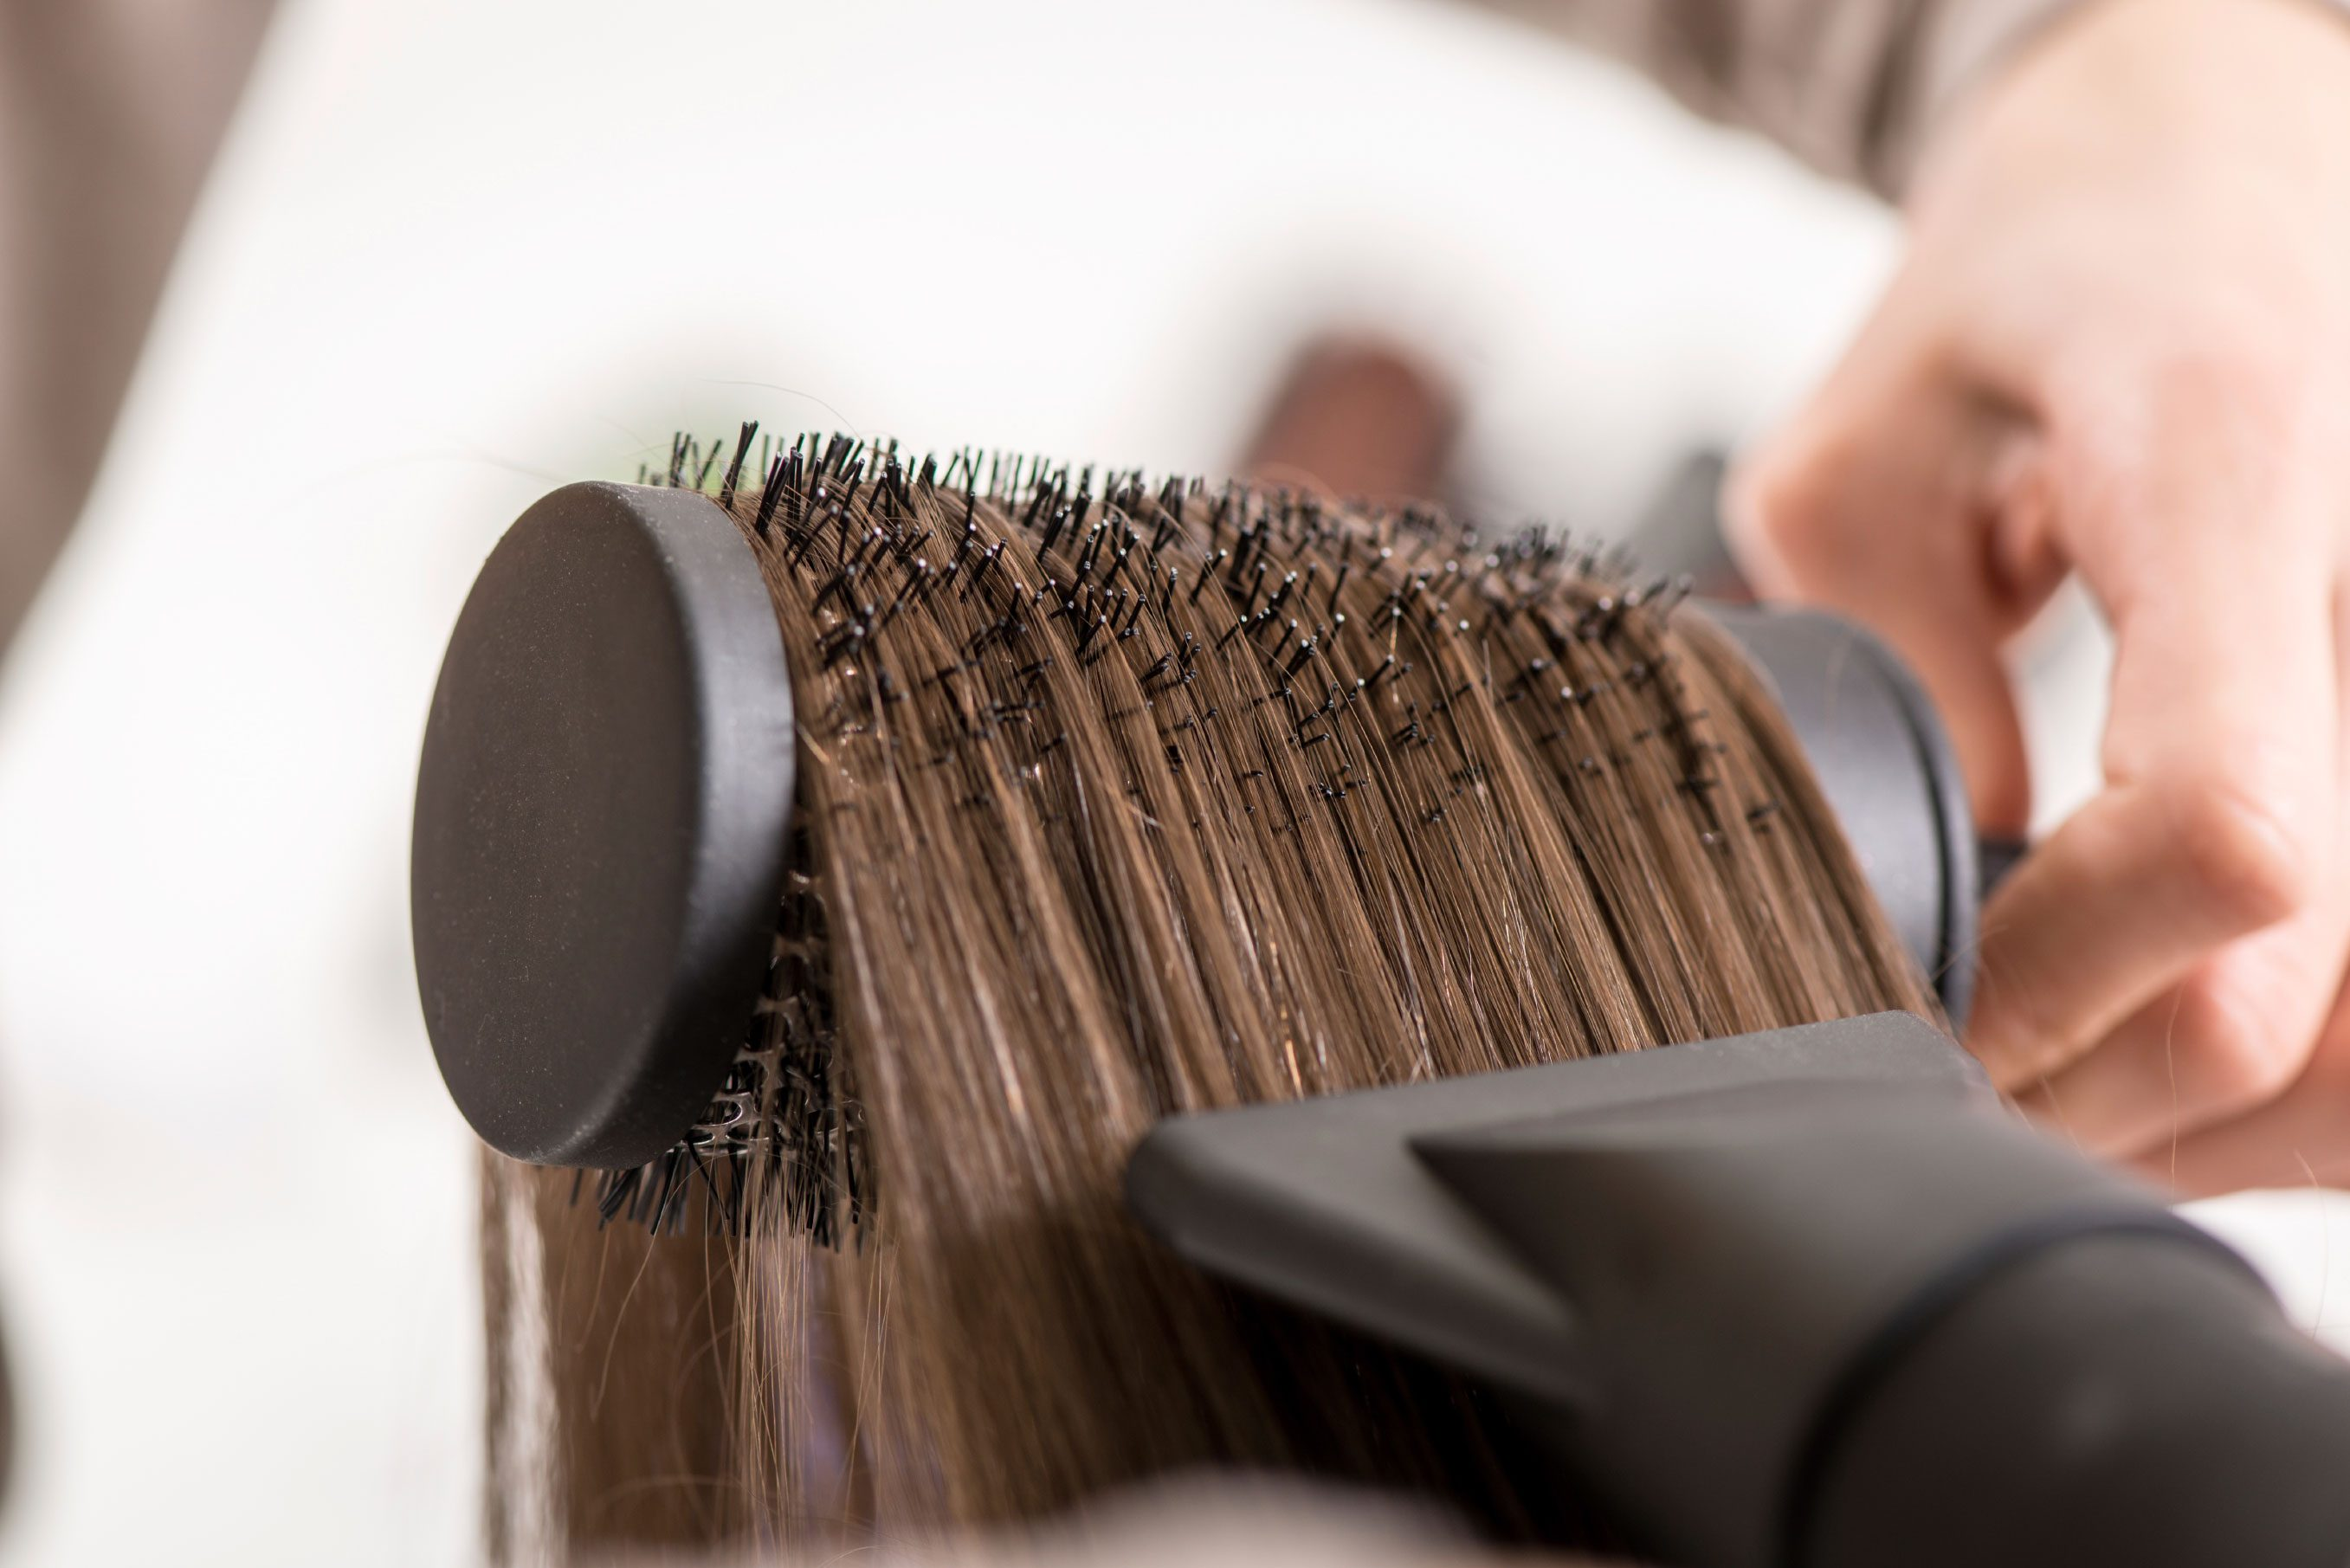 Always dry your hair completely before using a hot tool like a curling iron or a flat iron